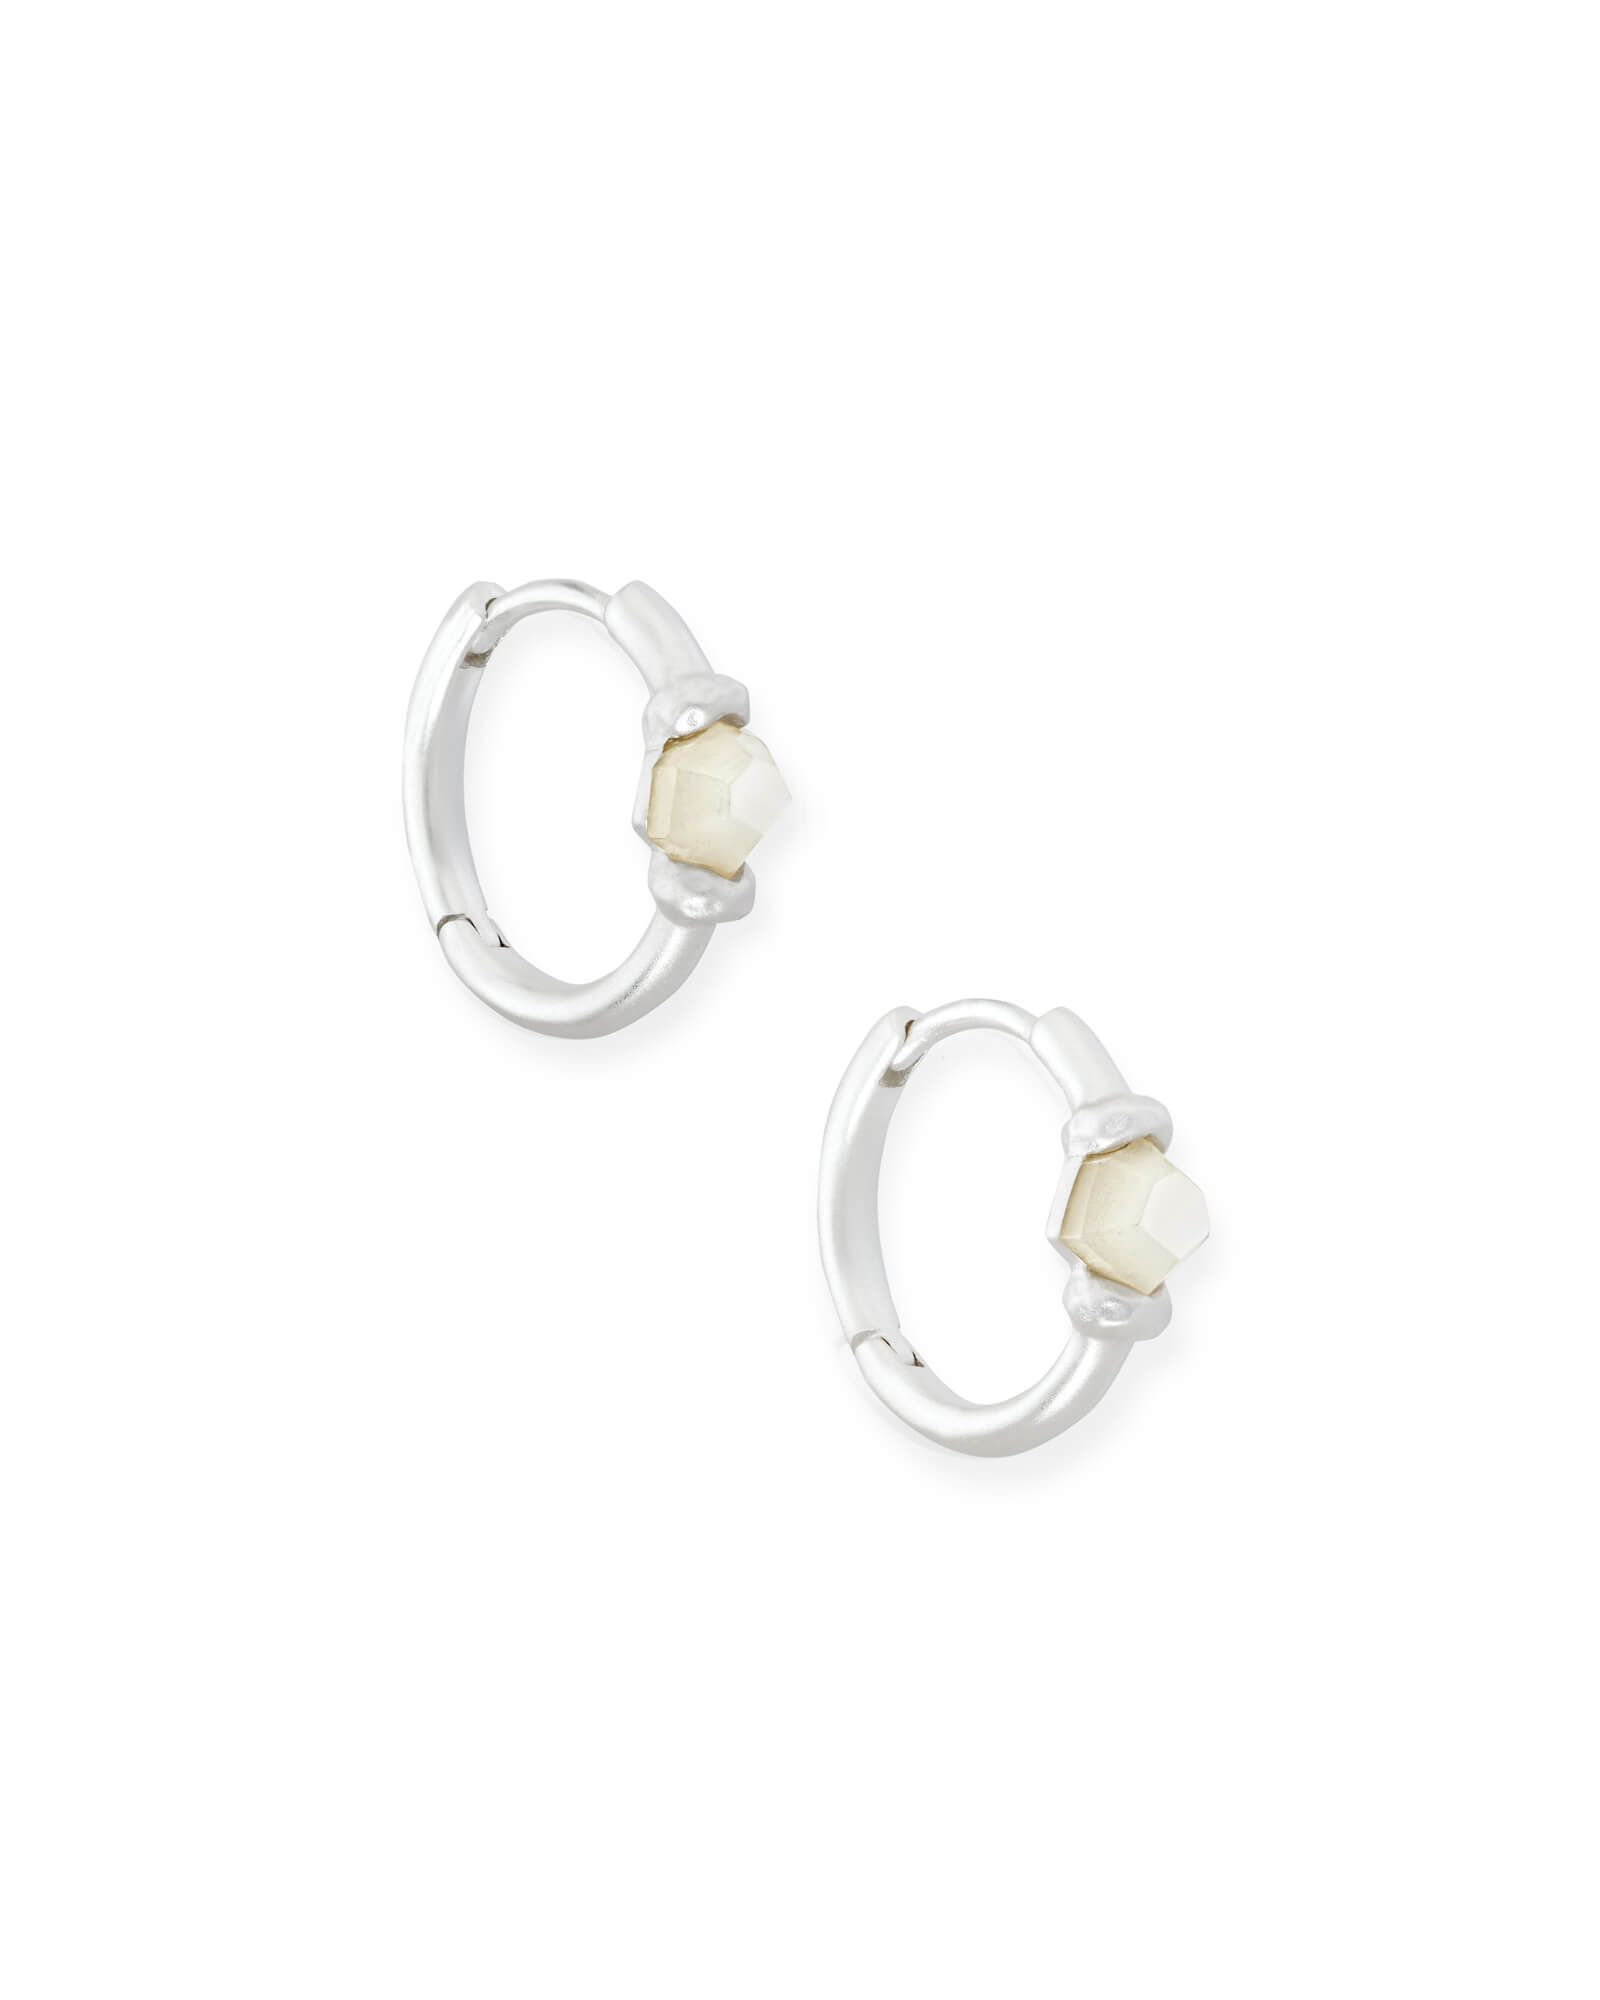 Ellms Bright Silver Huggie Earrings in Ivory Mother Of Pearl